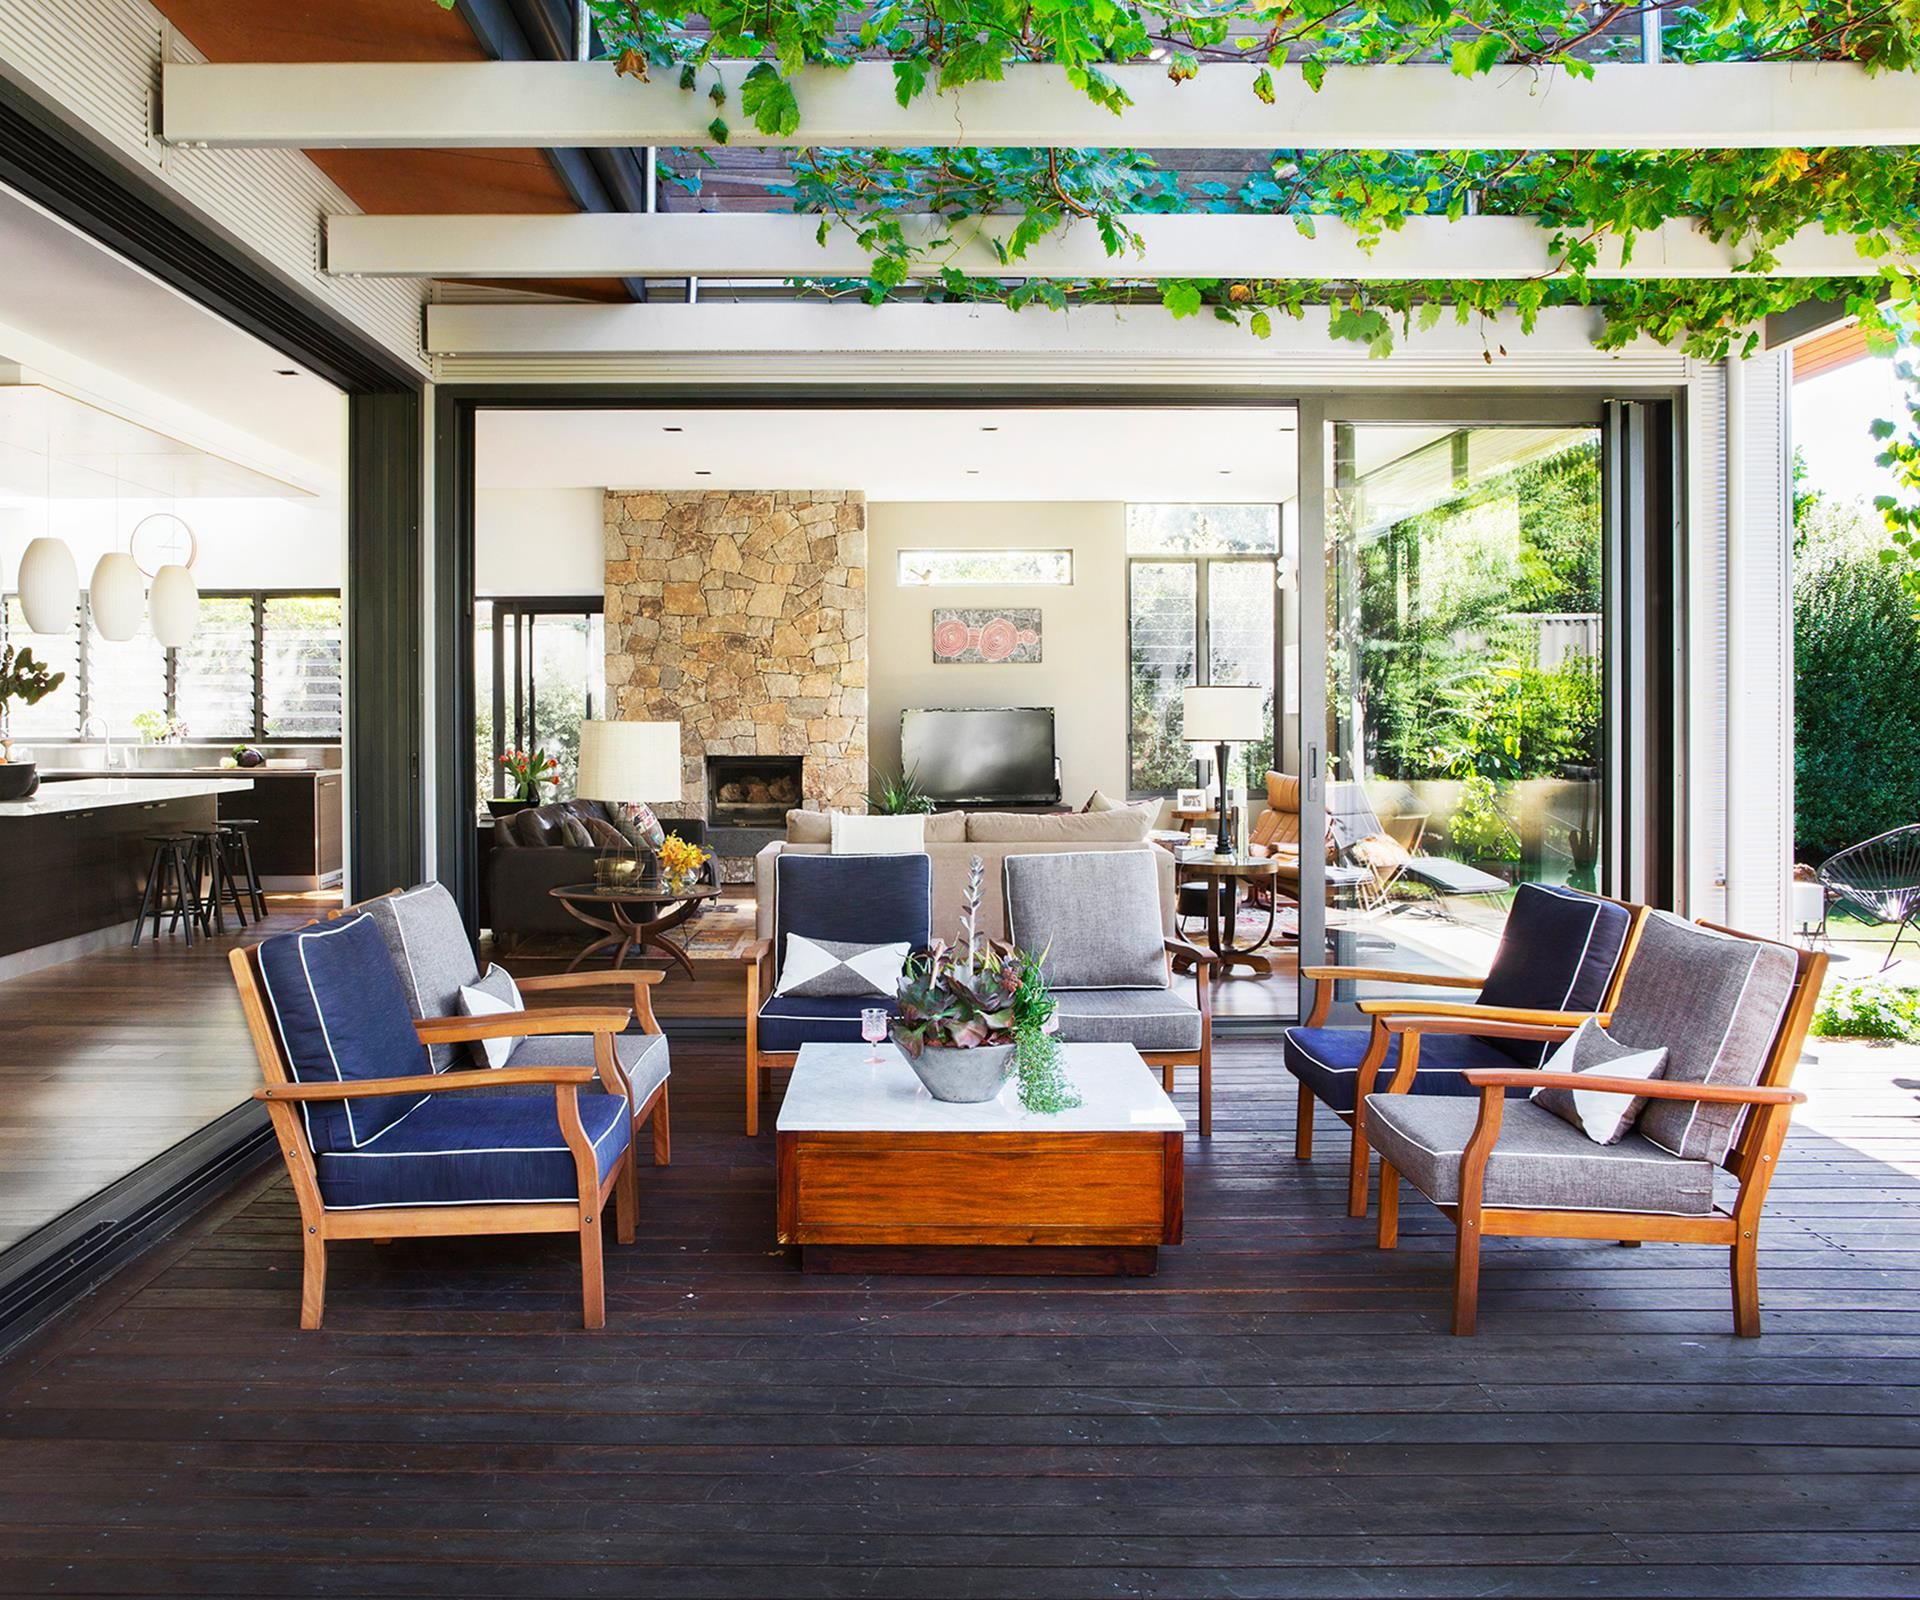 Perth Architects Join Forces To Build New Family Home Home Weatherproof Outdoor Furniture Balcony Design Family home with outdoor living room